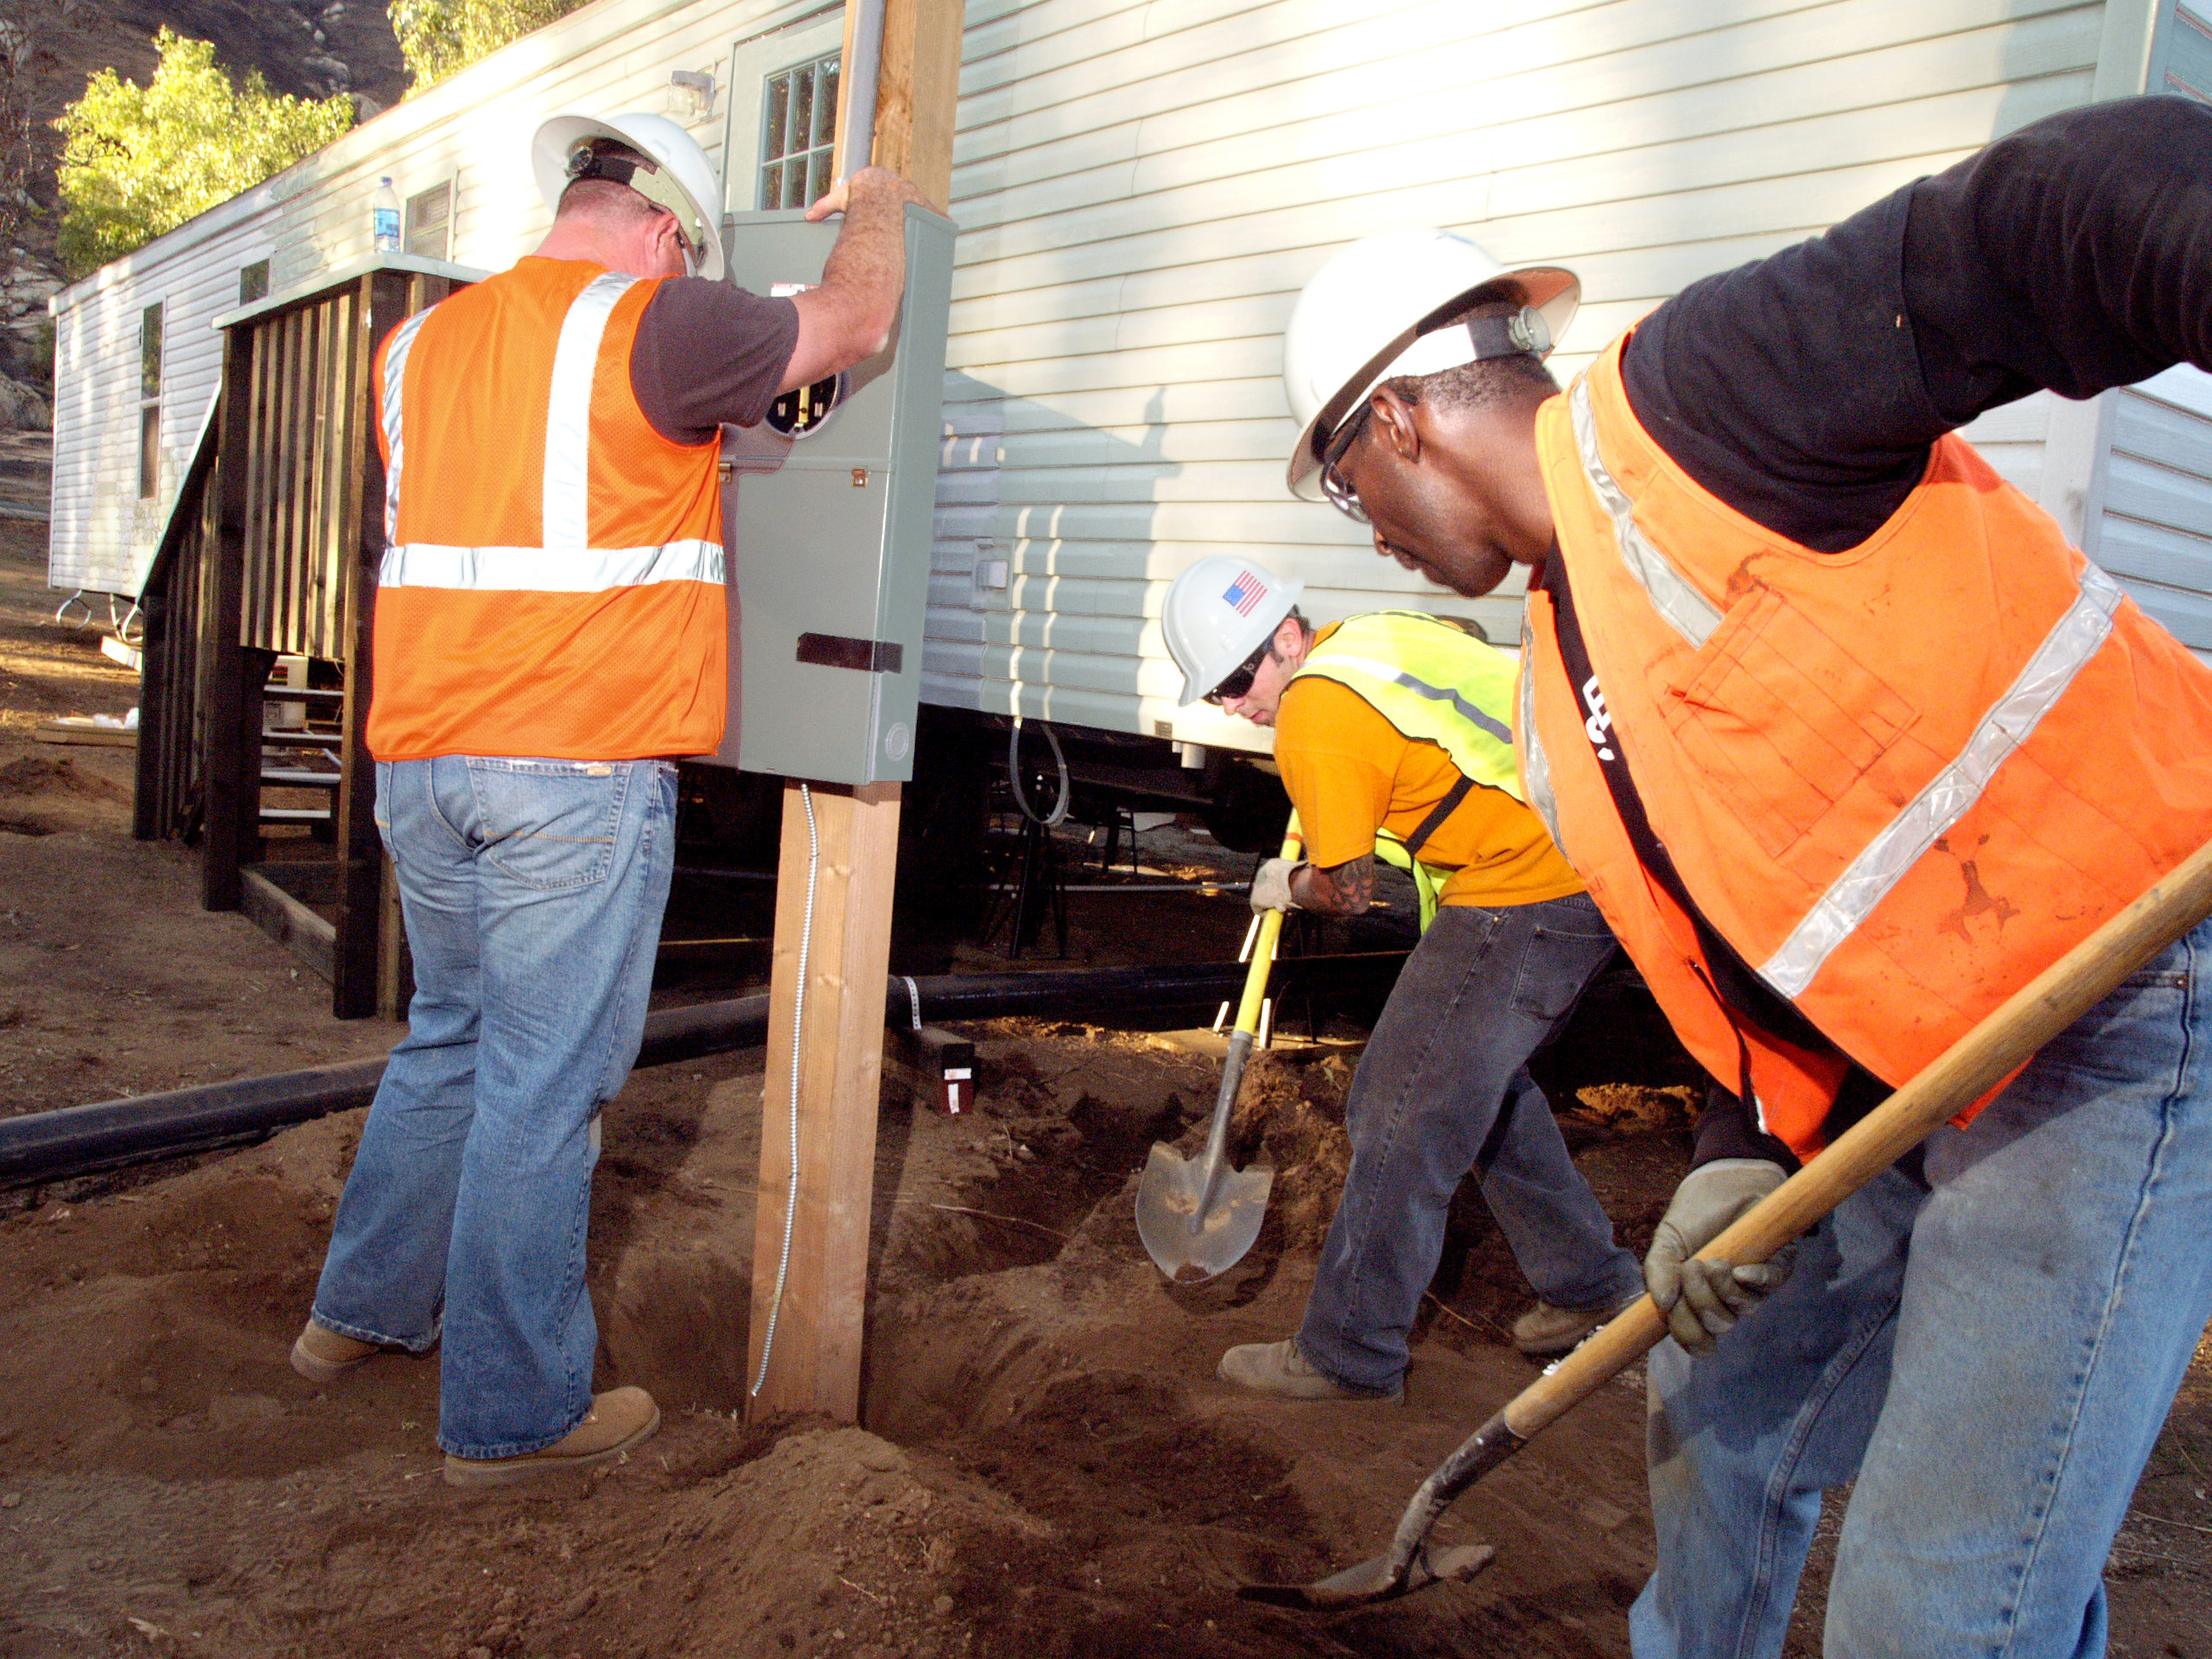 File:FEMA - 33797 - Electrical box being installed at a ... on providence home services, mobile funeral services, mobile web design, mobile hair salon, mobile coffee,